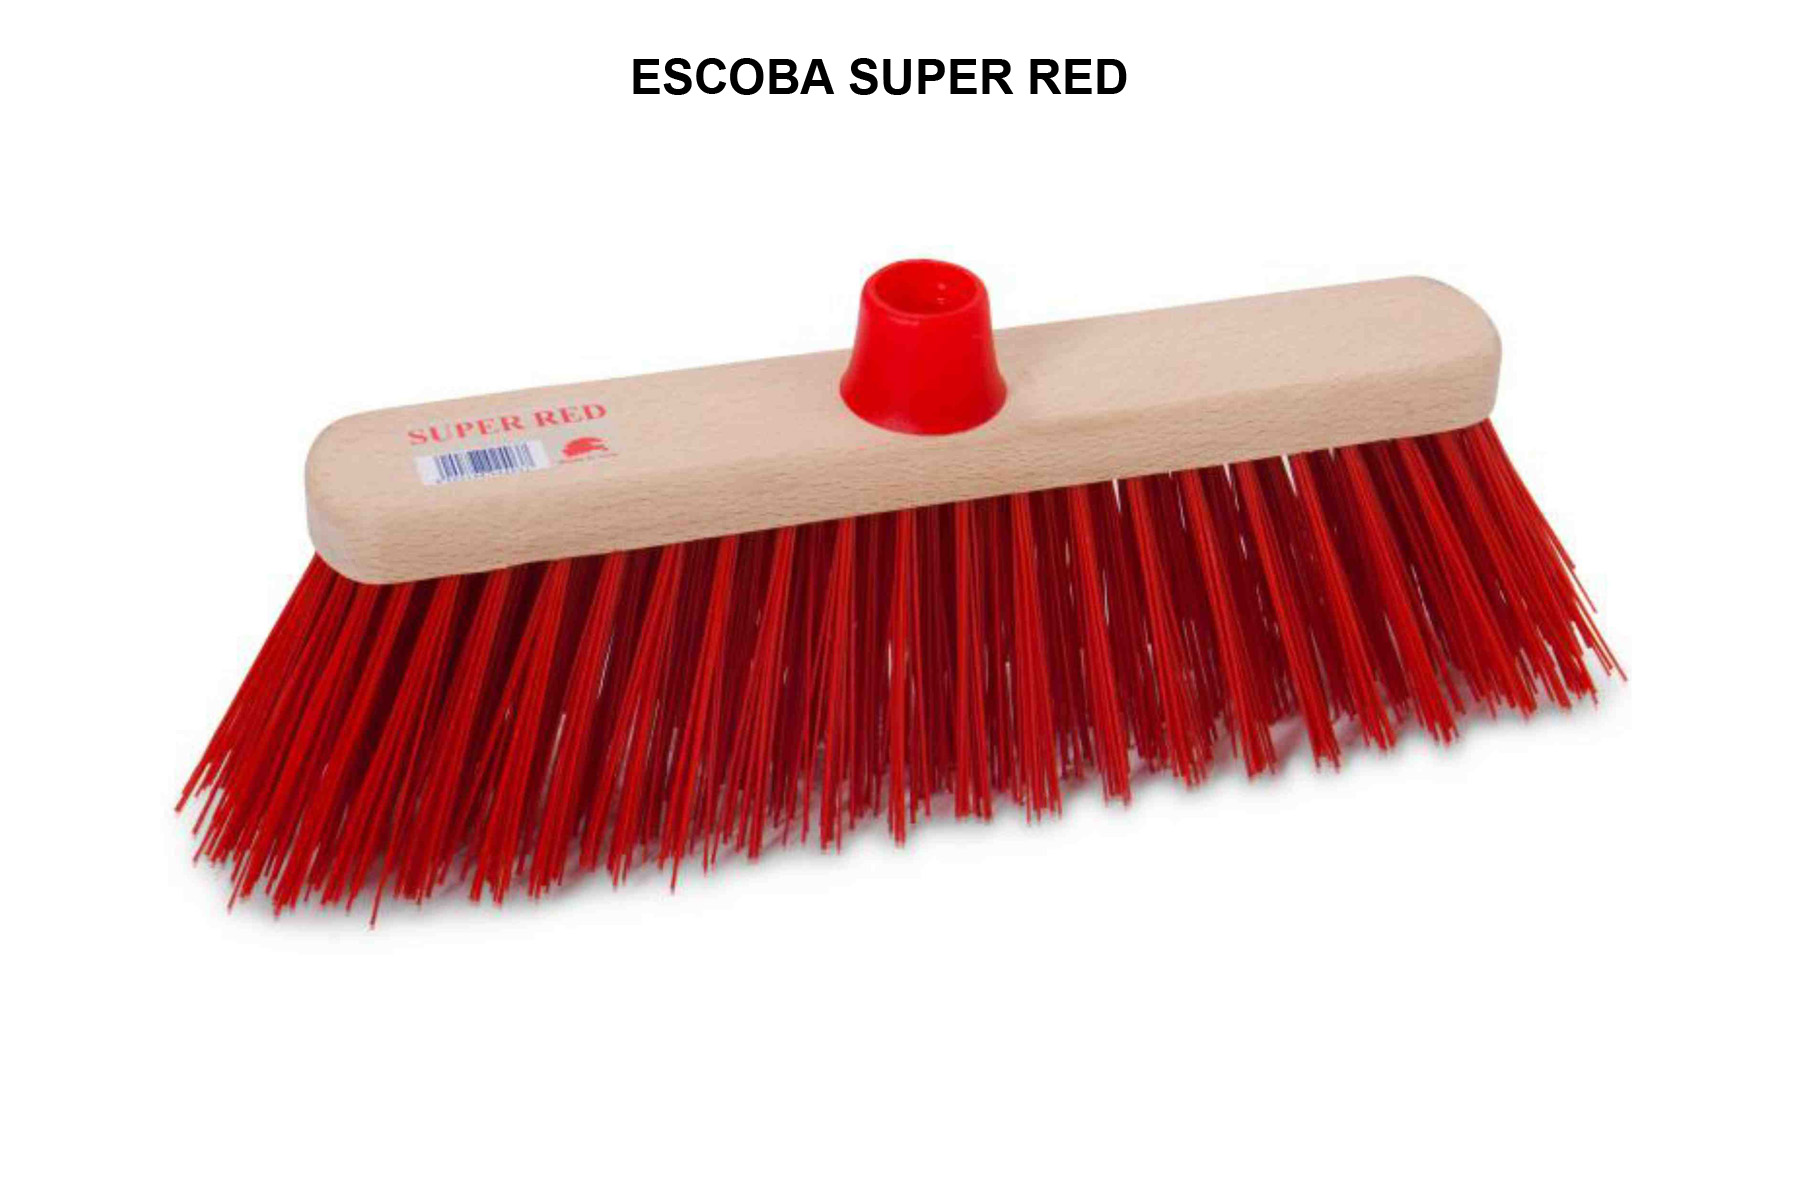 ESCOBA SUPER RED